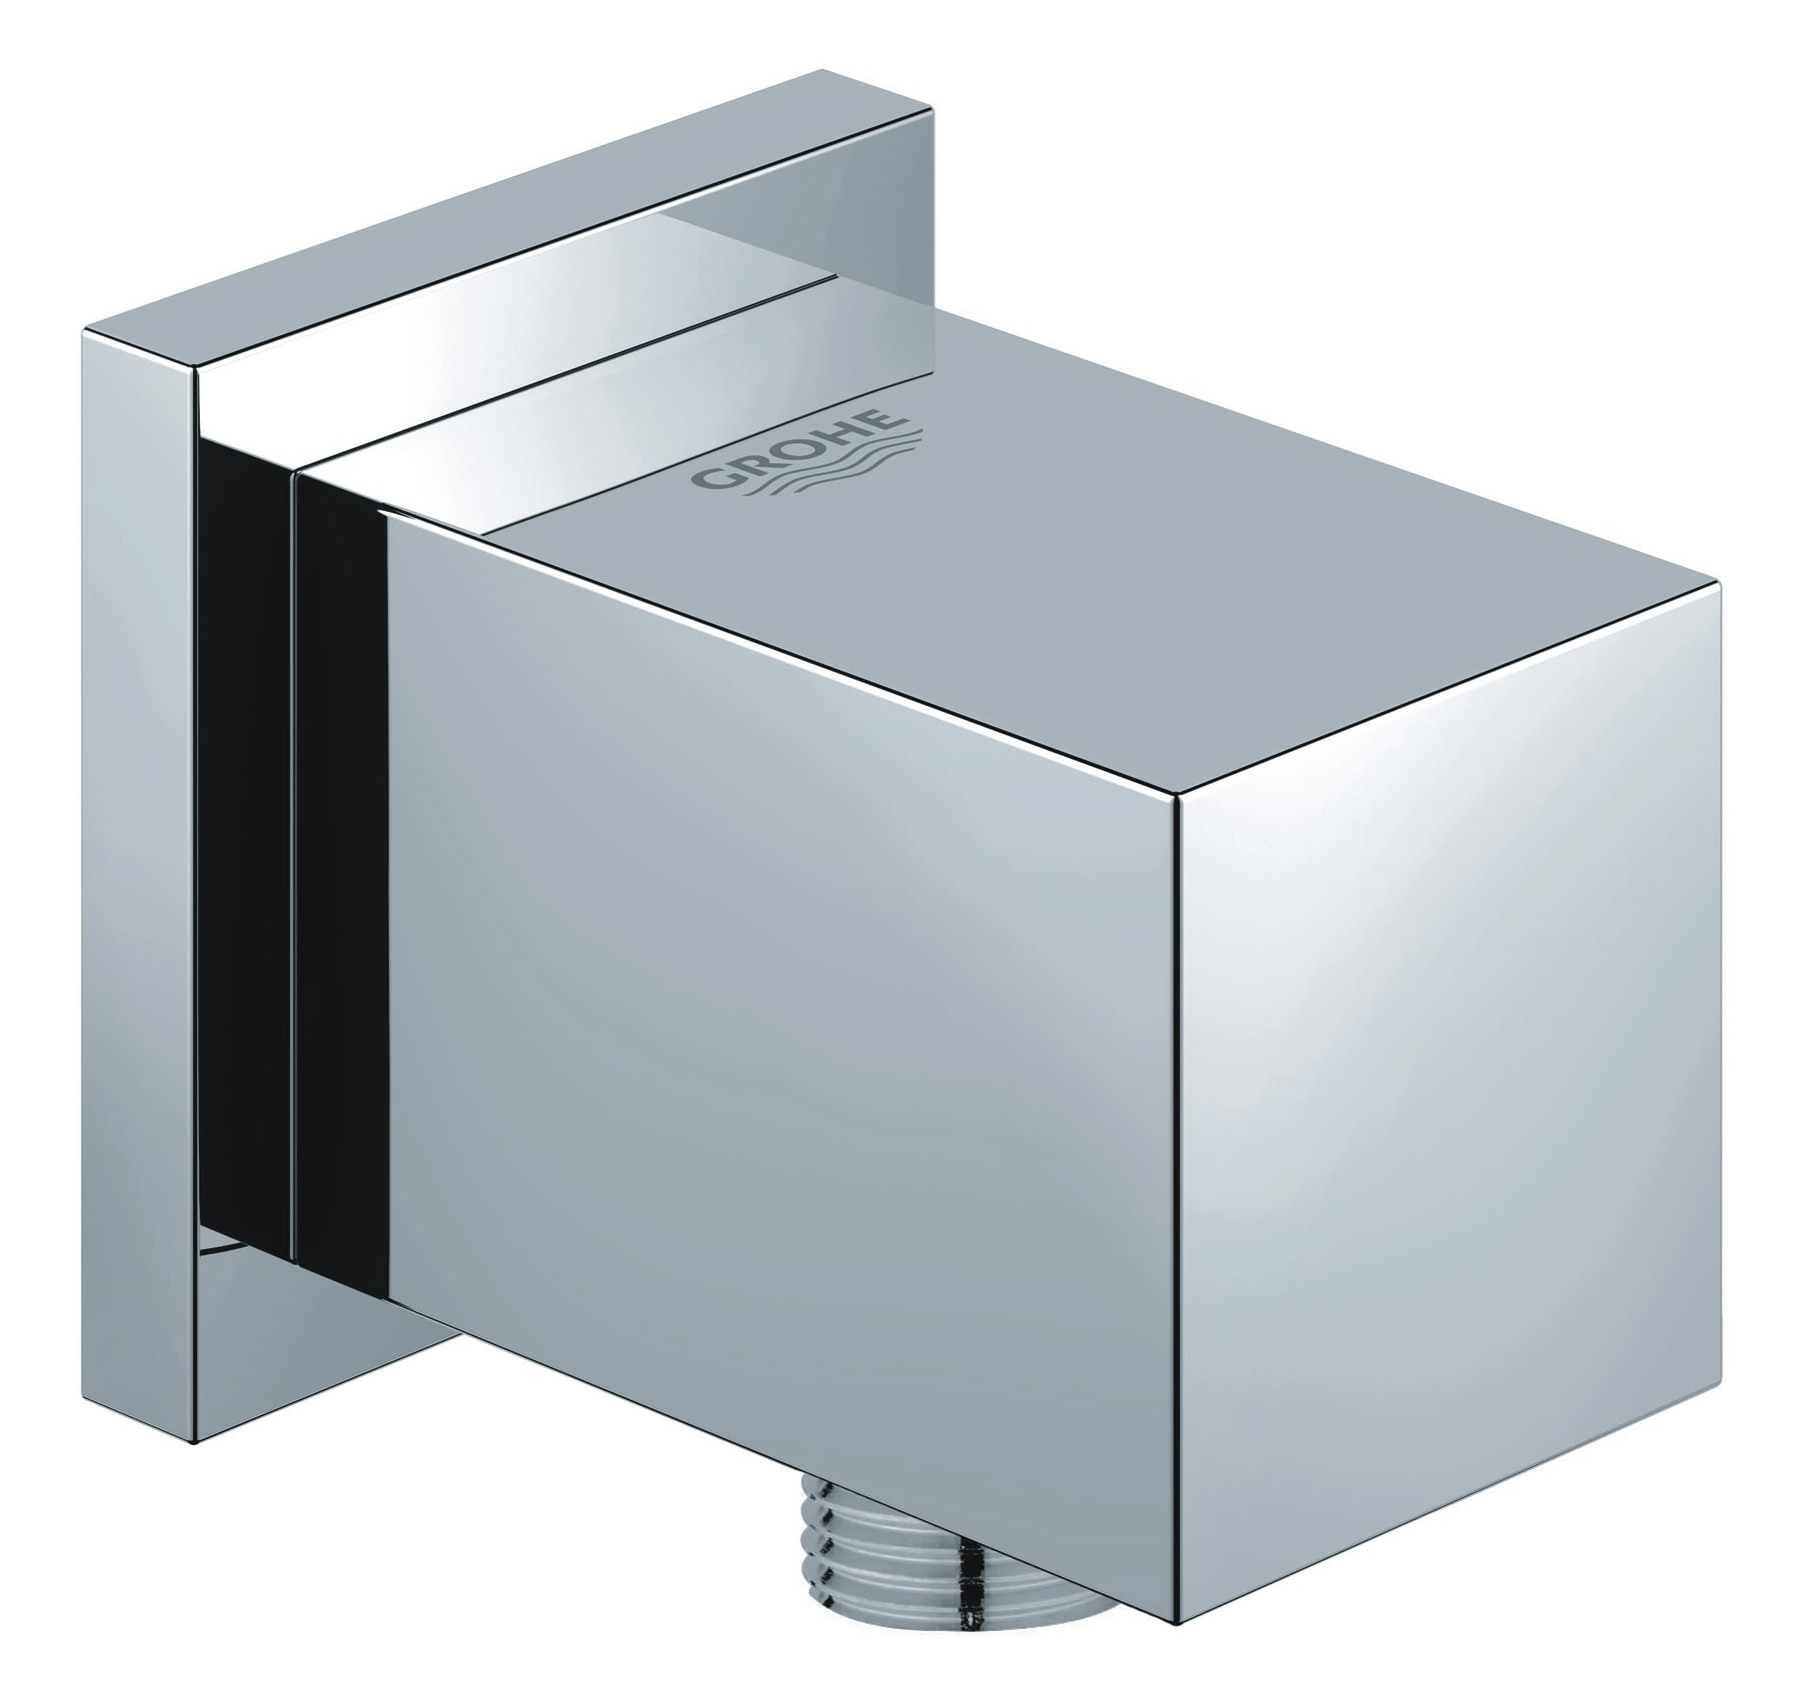 grohe euphoria cube chrome shower outlet elbow half inch. Black Bedroom Furniture Sets. Home Design Ideas